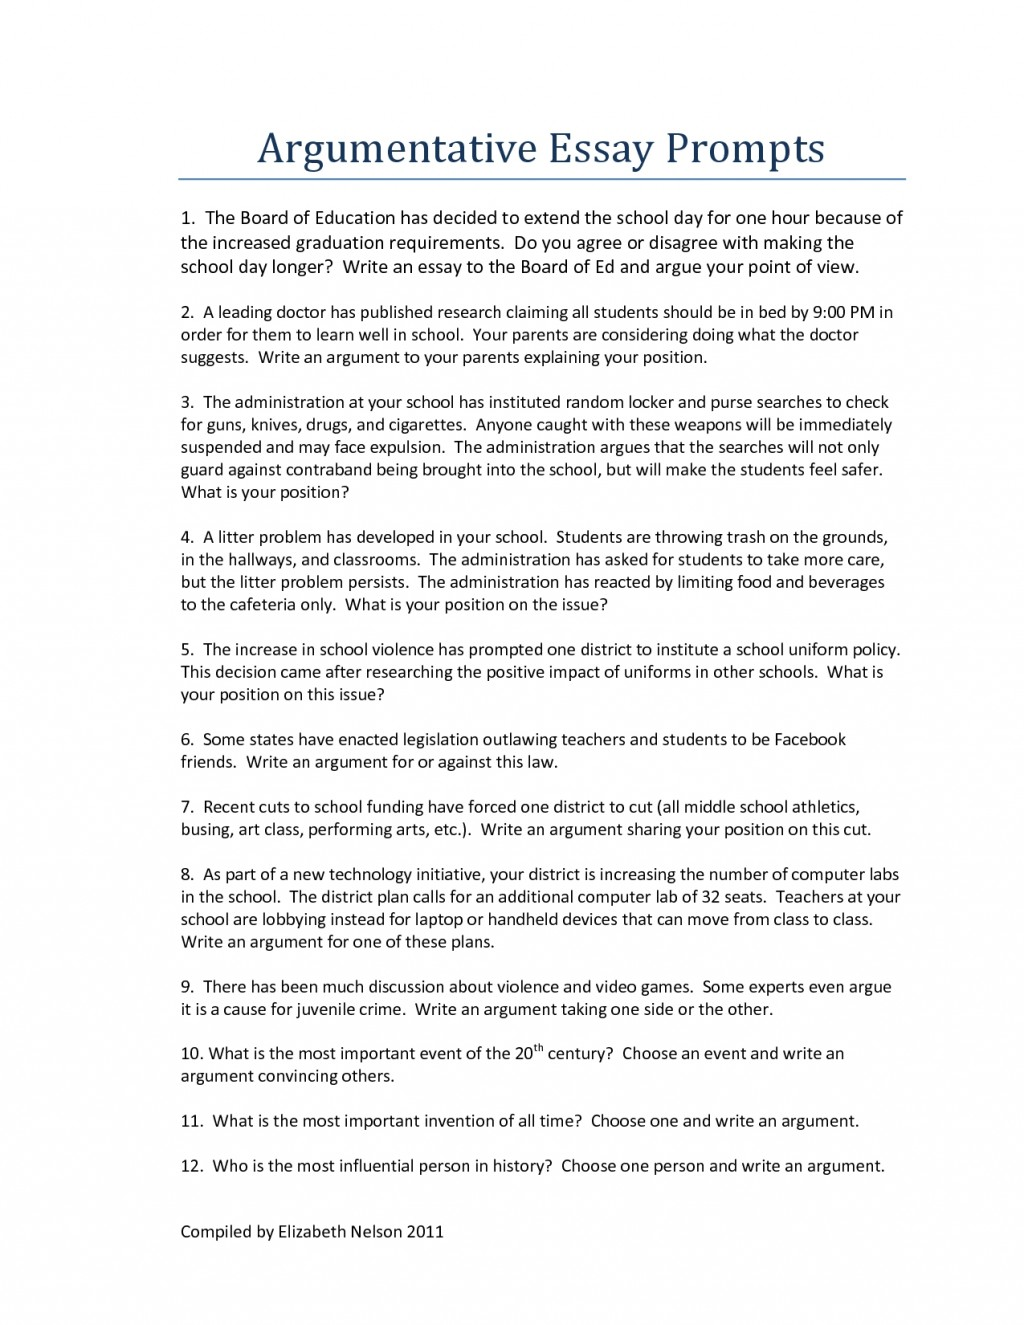 001 Argumentative Essay Topics Education Example For Middle School Writings And Essays Should Physical Mandatory In Schools Good Persuasive High Argument Unique On Higher Early Childhood Large